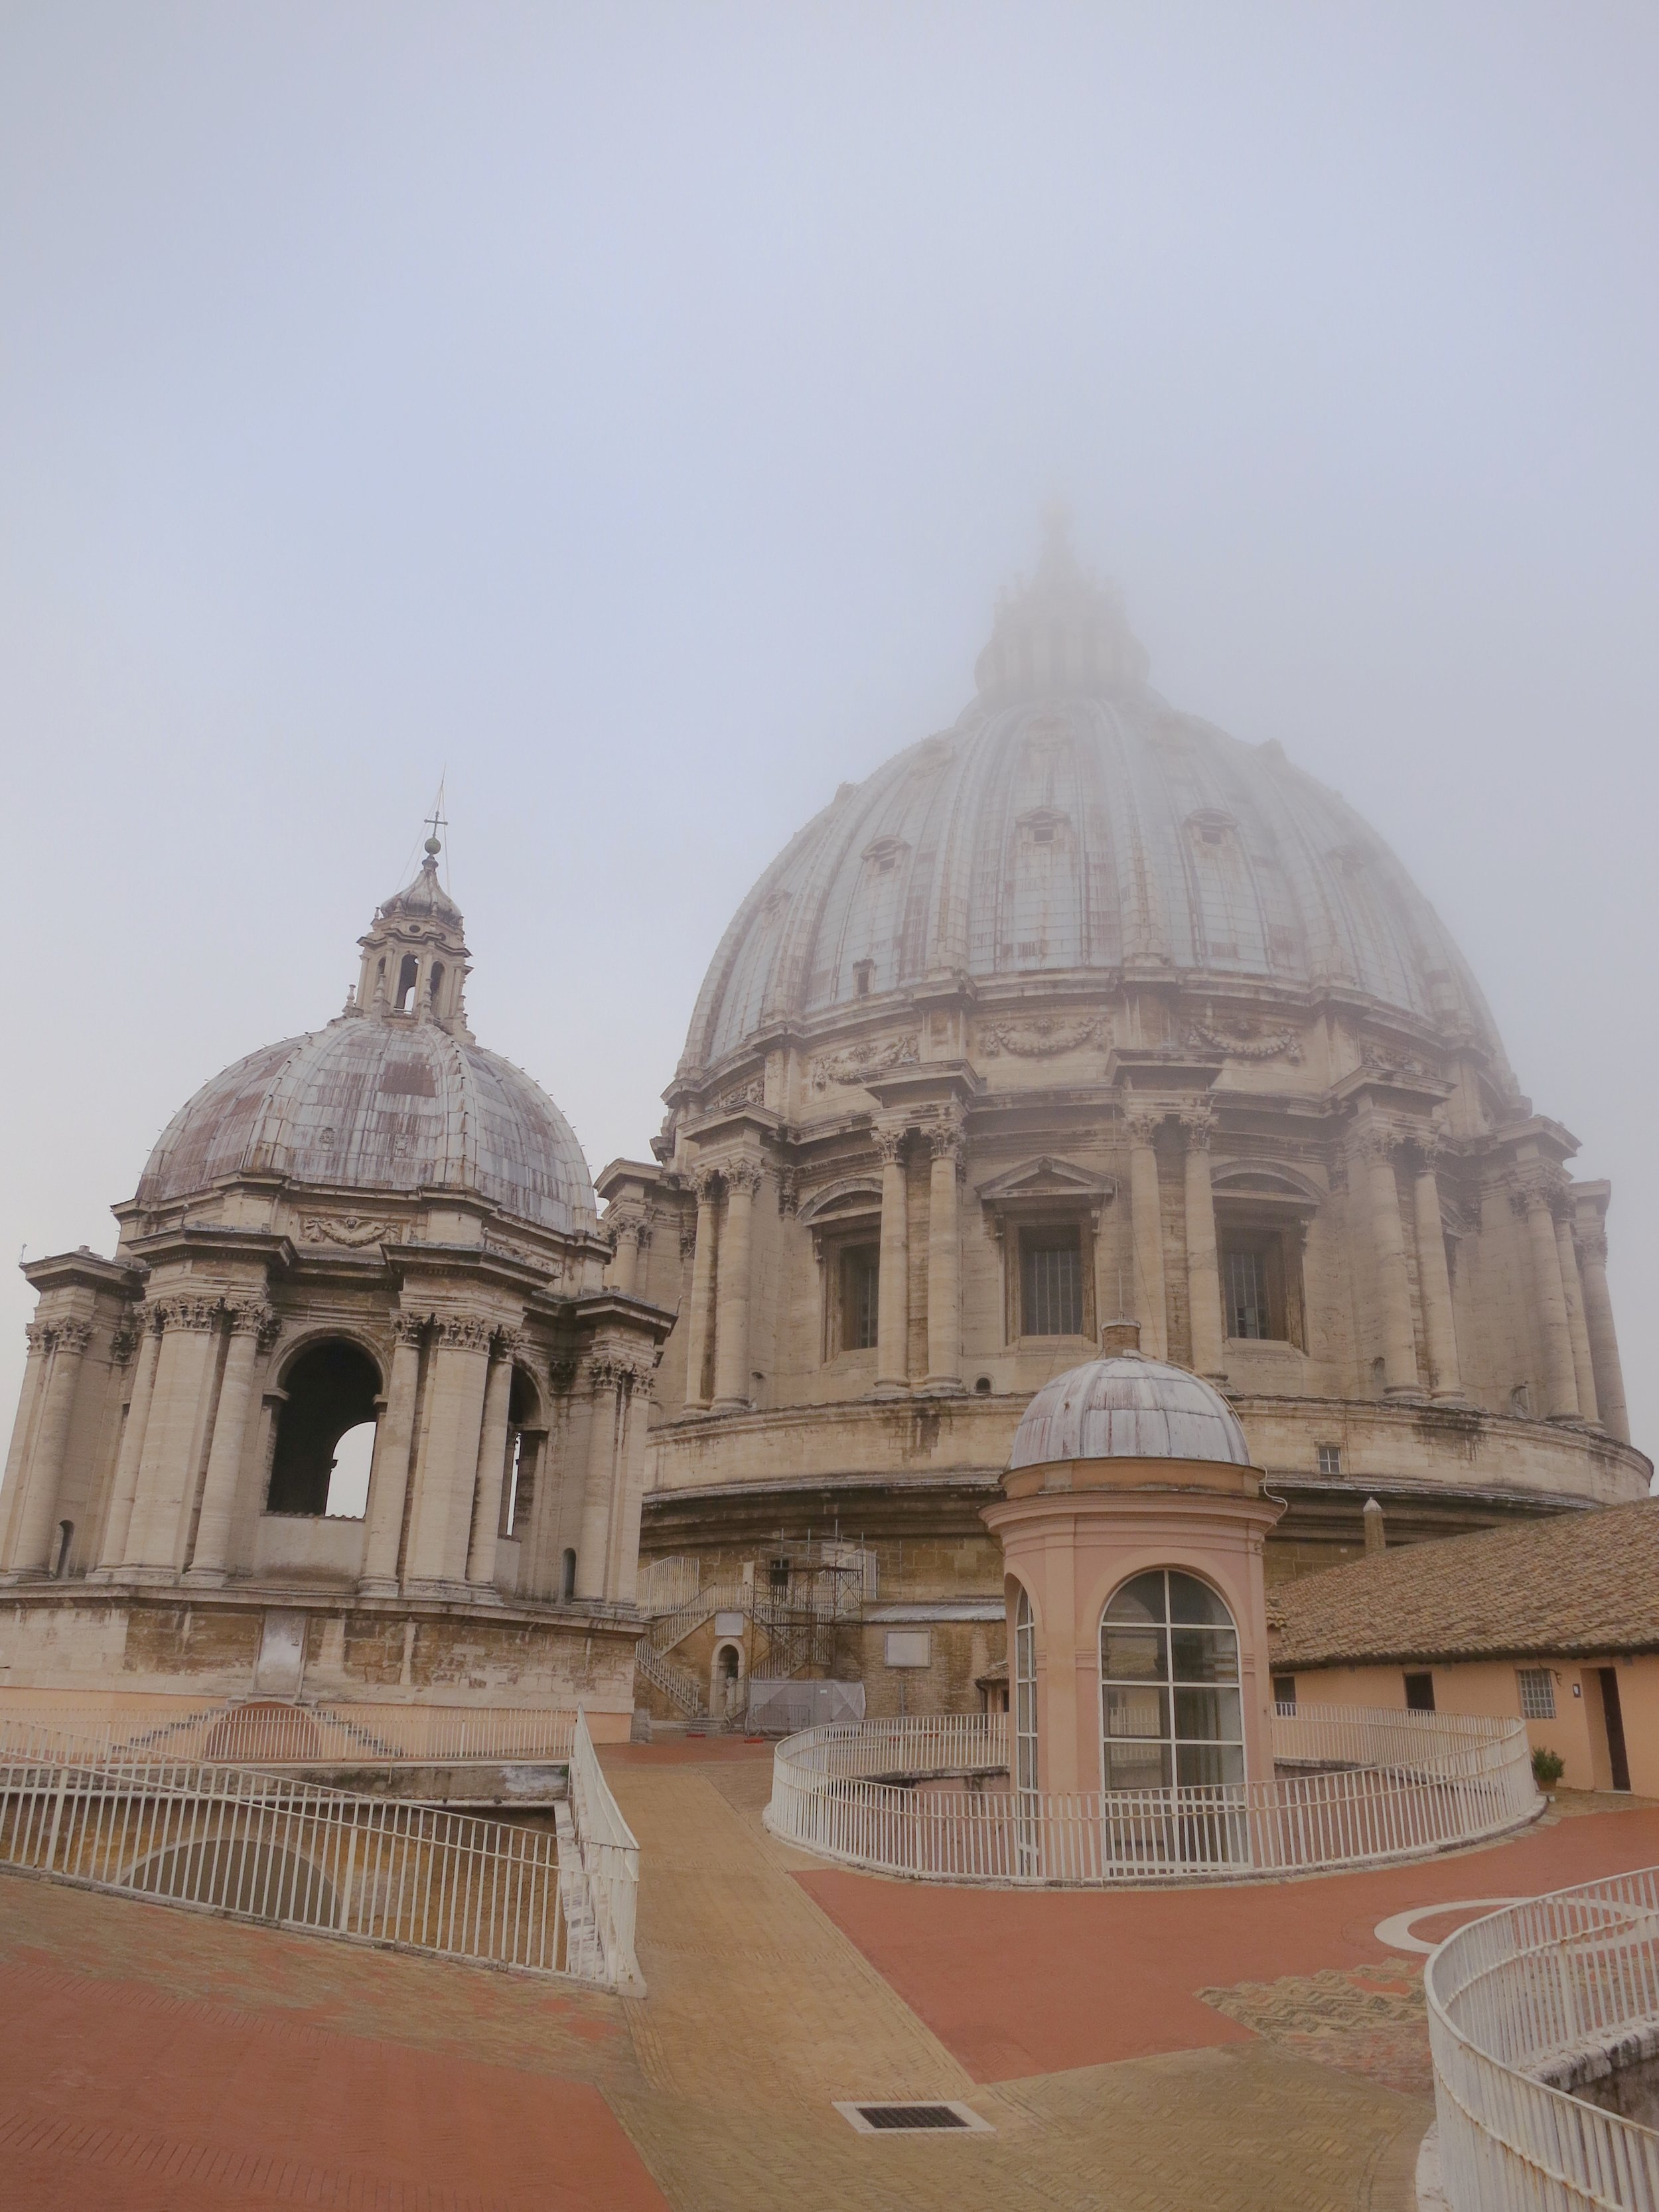 A visit to St. Peter's Basilica, in the Vatican City, just as it opens for the day.